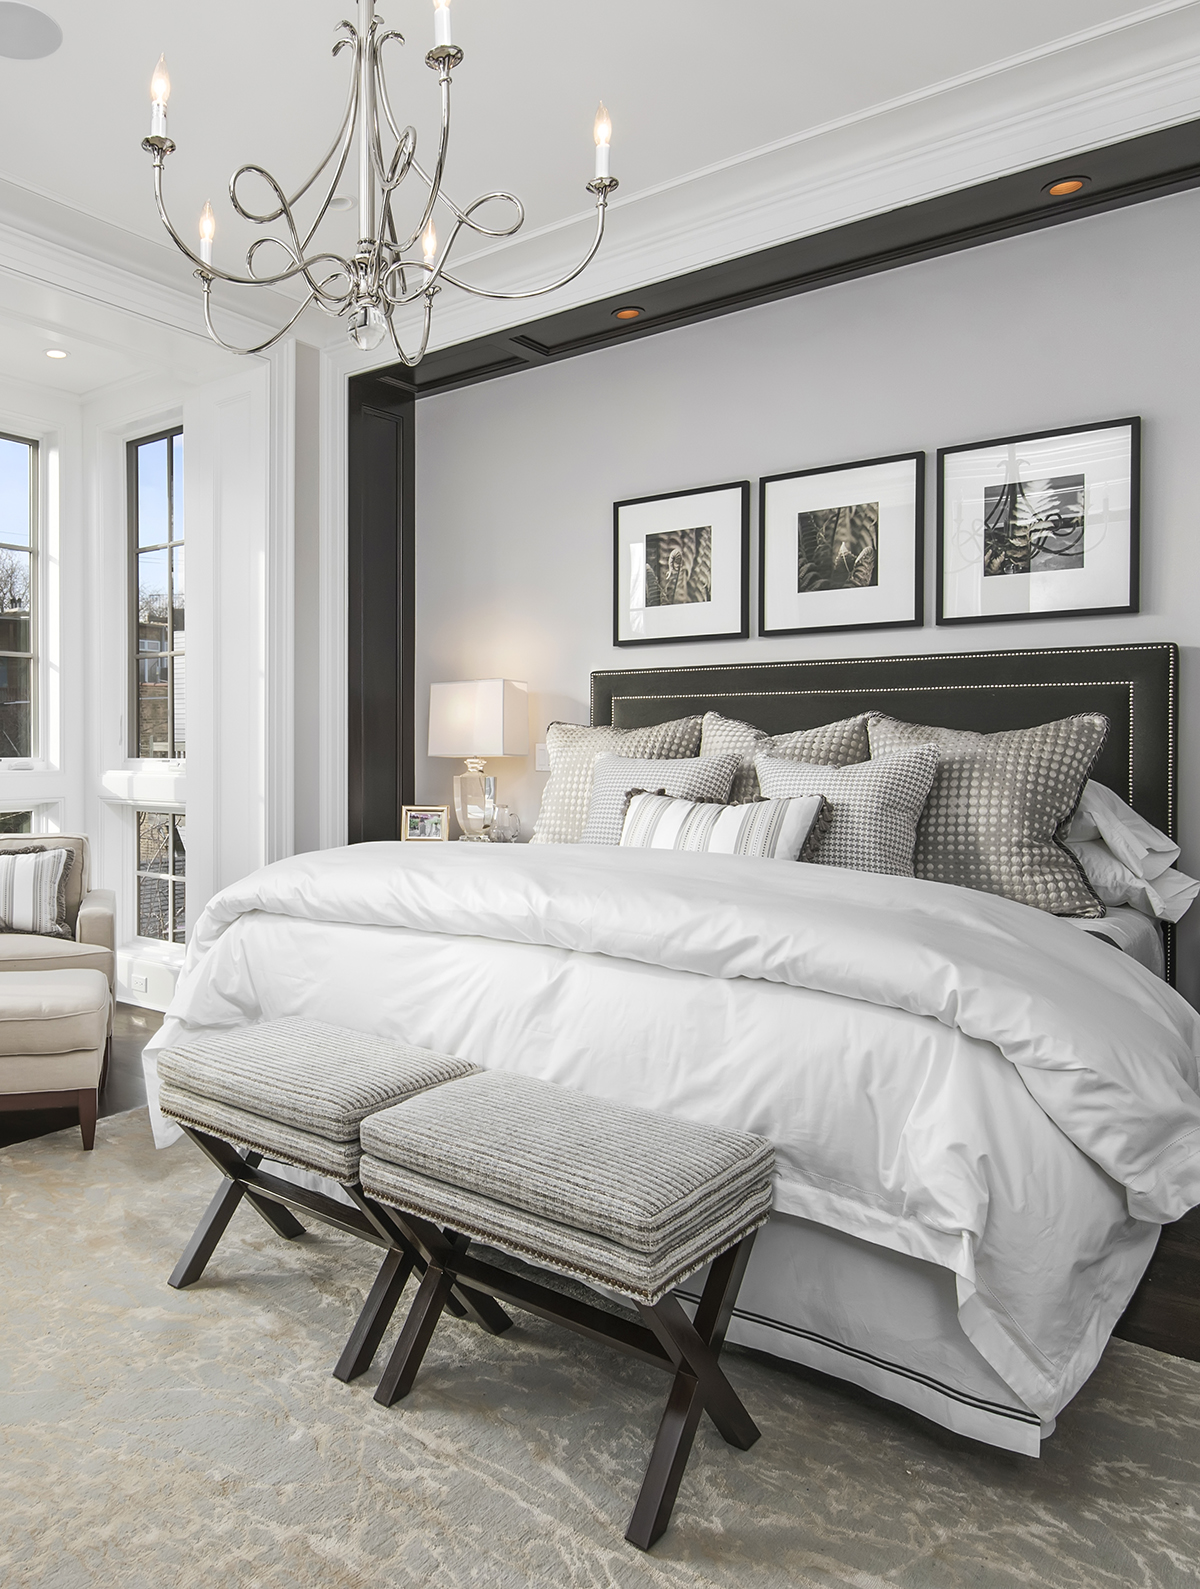 Bedroom Ideas from the Top Designers | Bedrooms Image Gallery